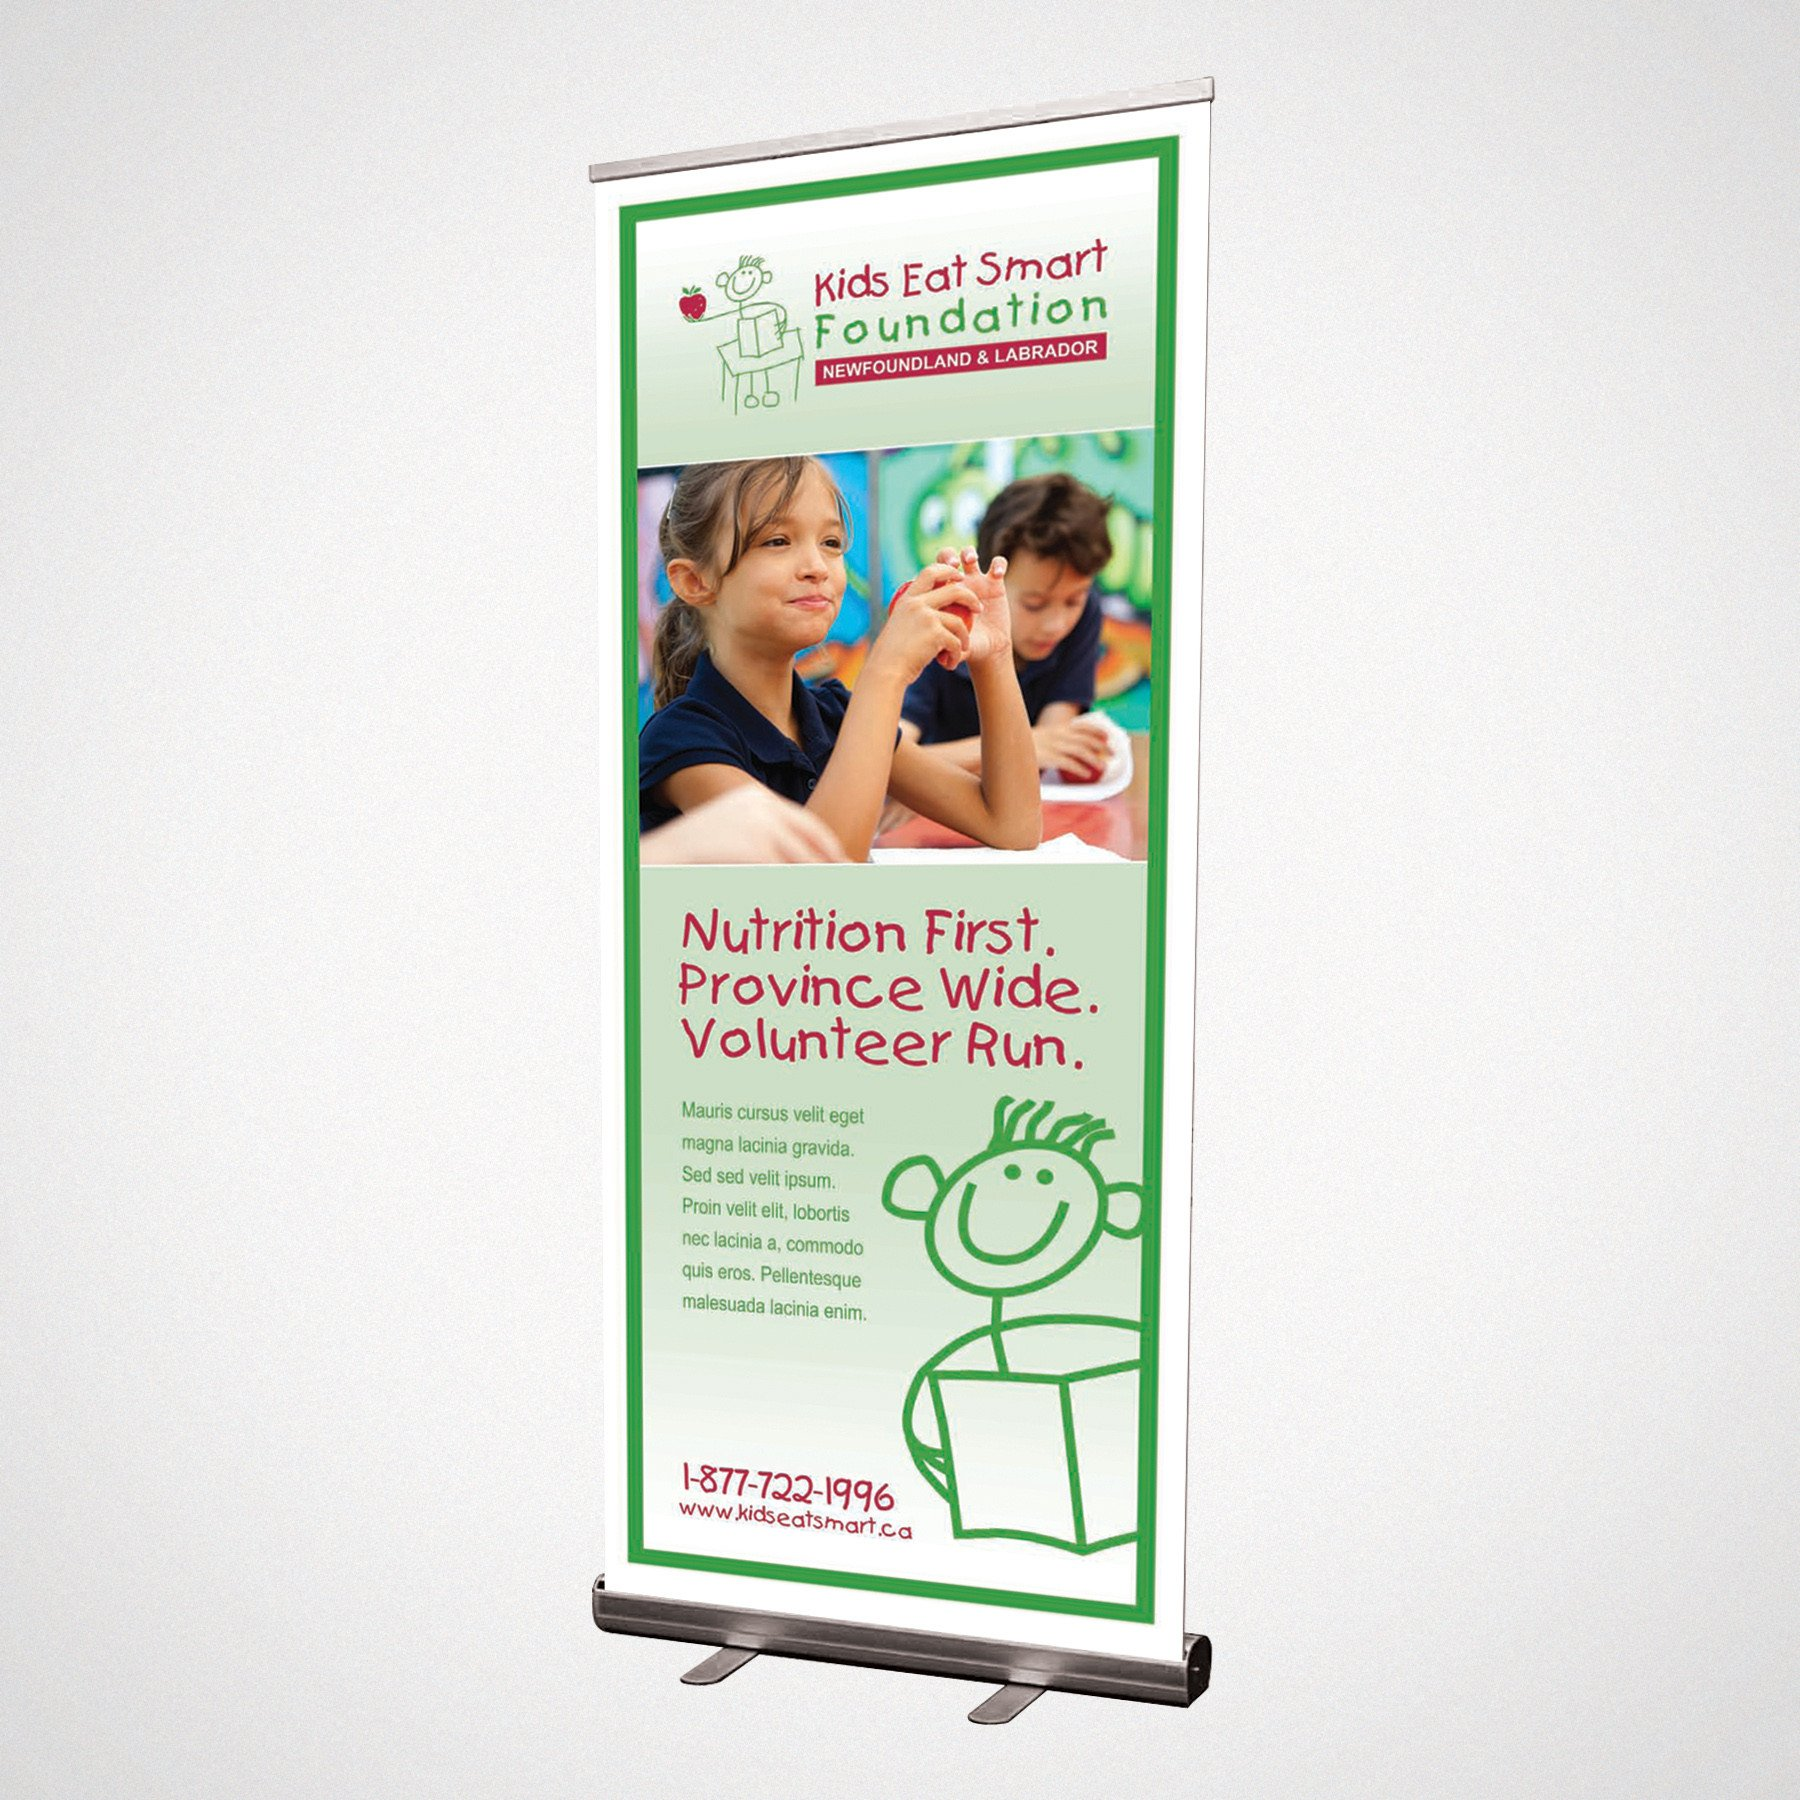 Pop Up Banner Designs Kids Eat Smart Pop Up Banner Design Troy Templeman Design